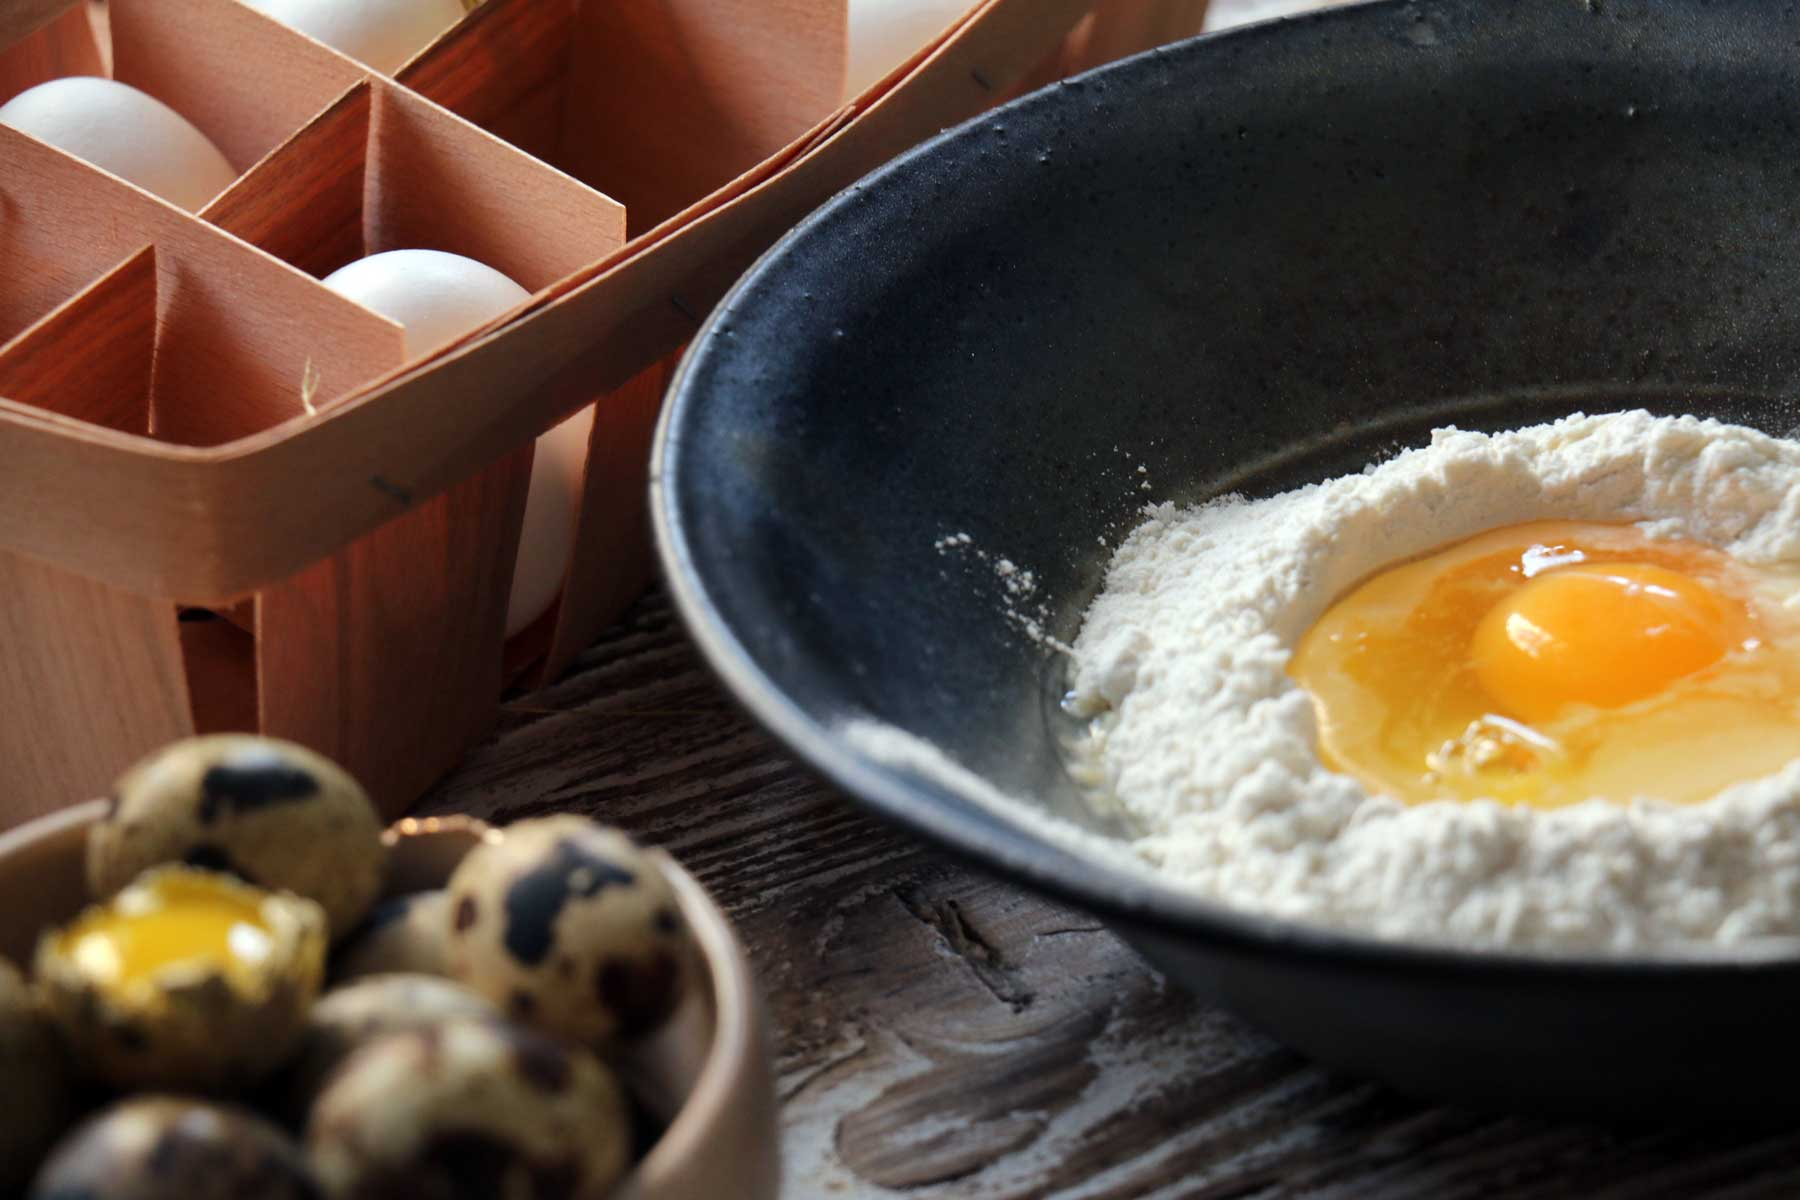 Eggs being used in baking